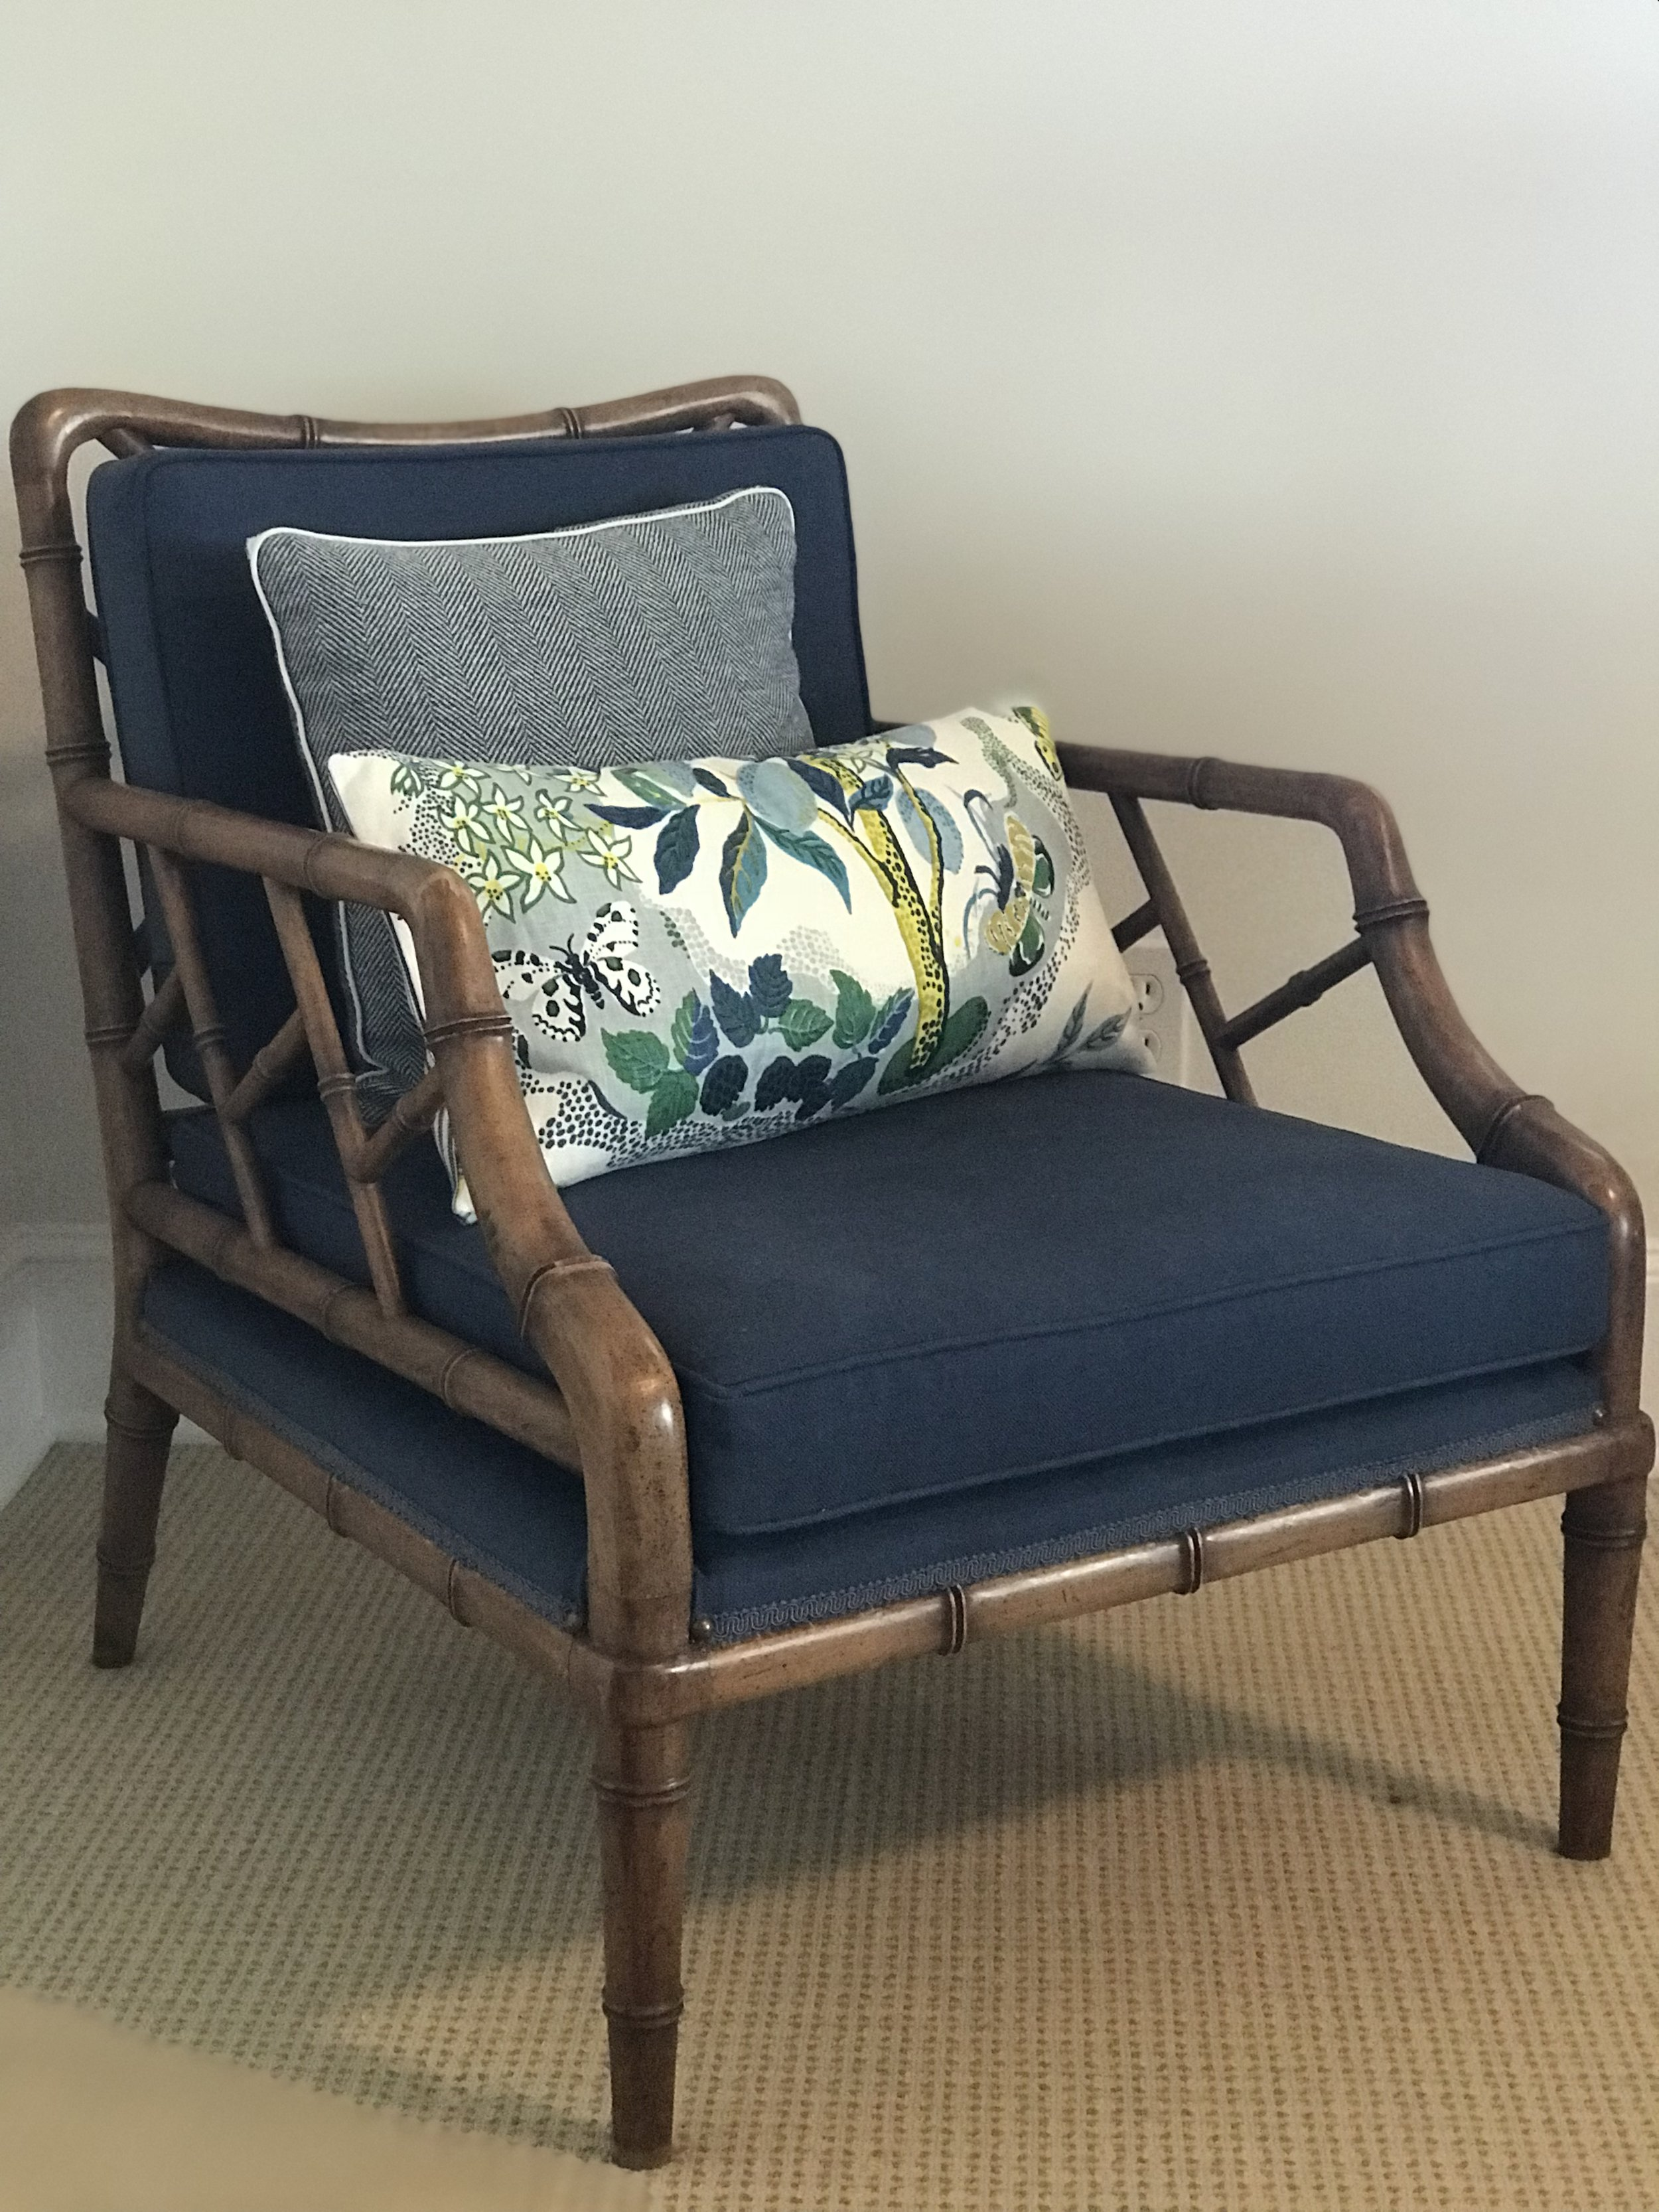 Vintage bamboo chair reupholstered with a classic navy fabric and custom accent pillows